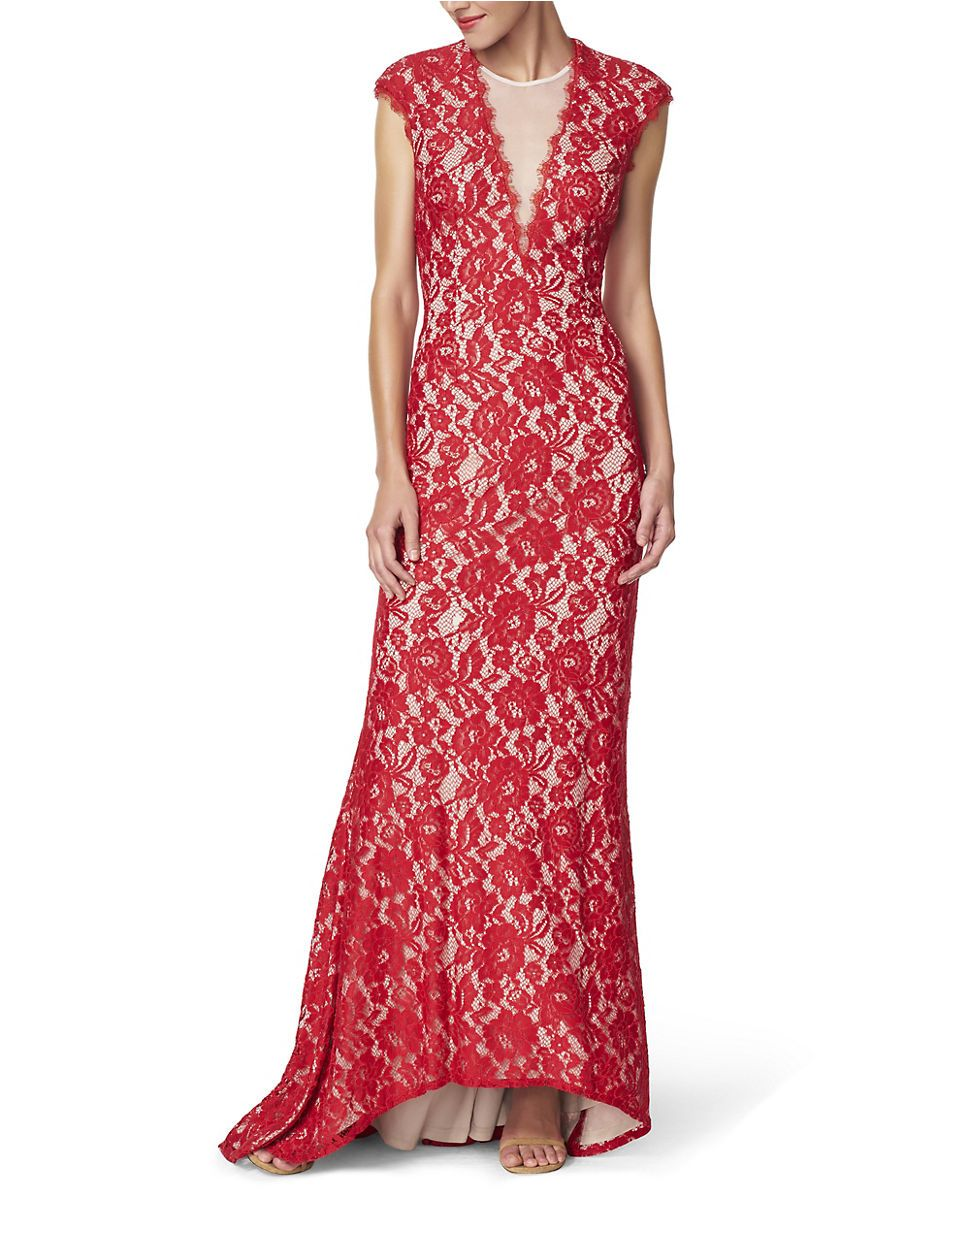 Aidan mattox red and black lace dress wedding dress pinterest